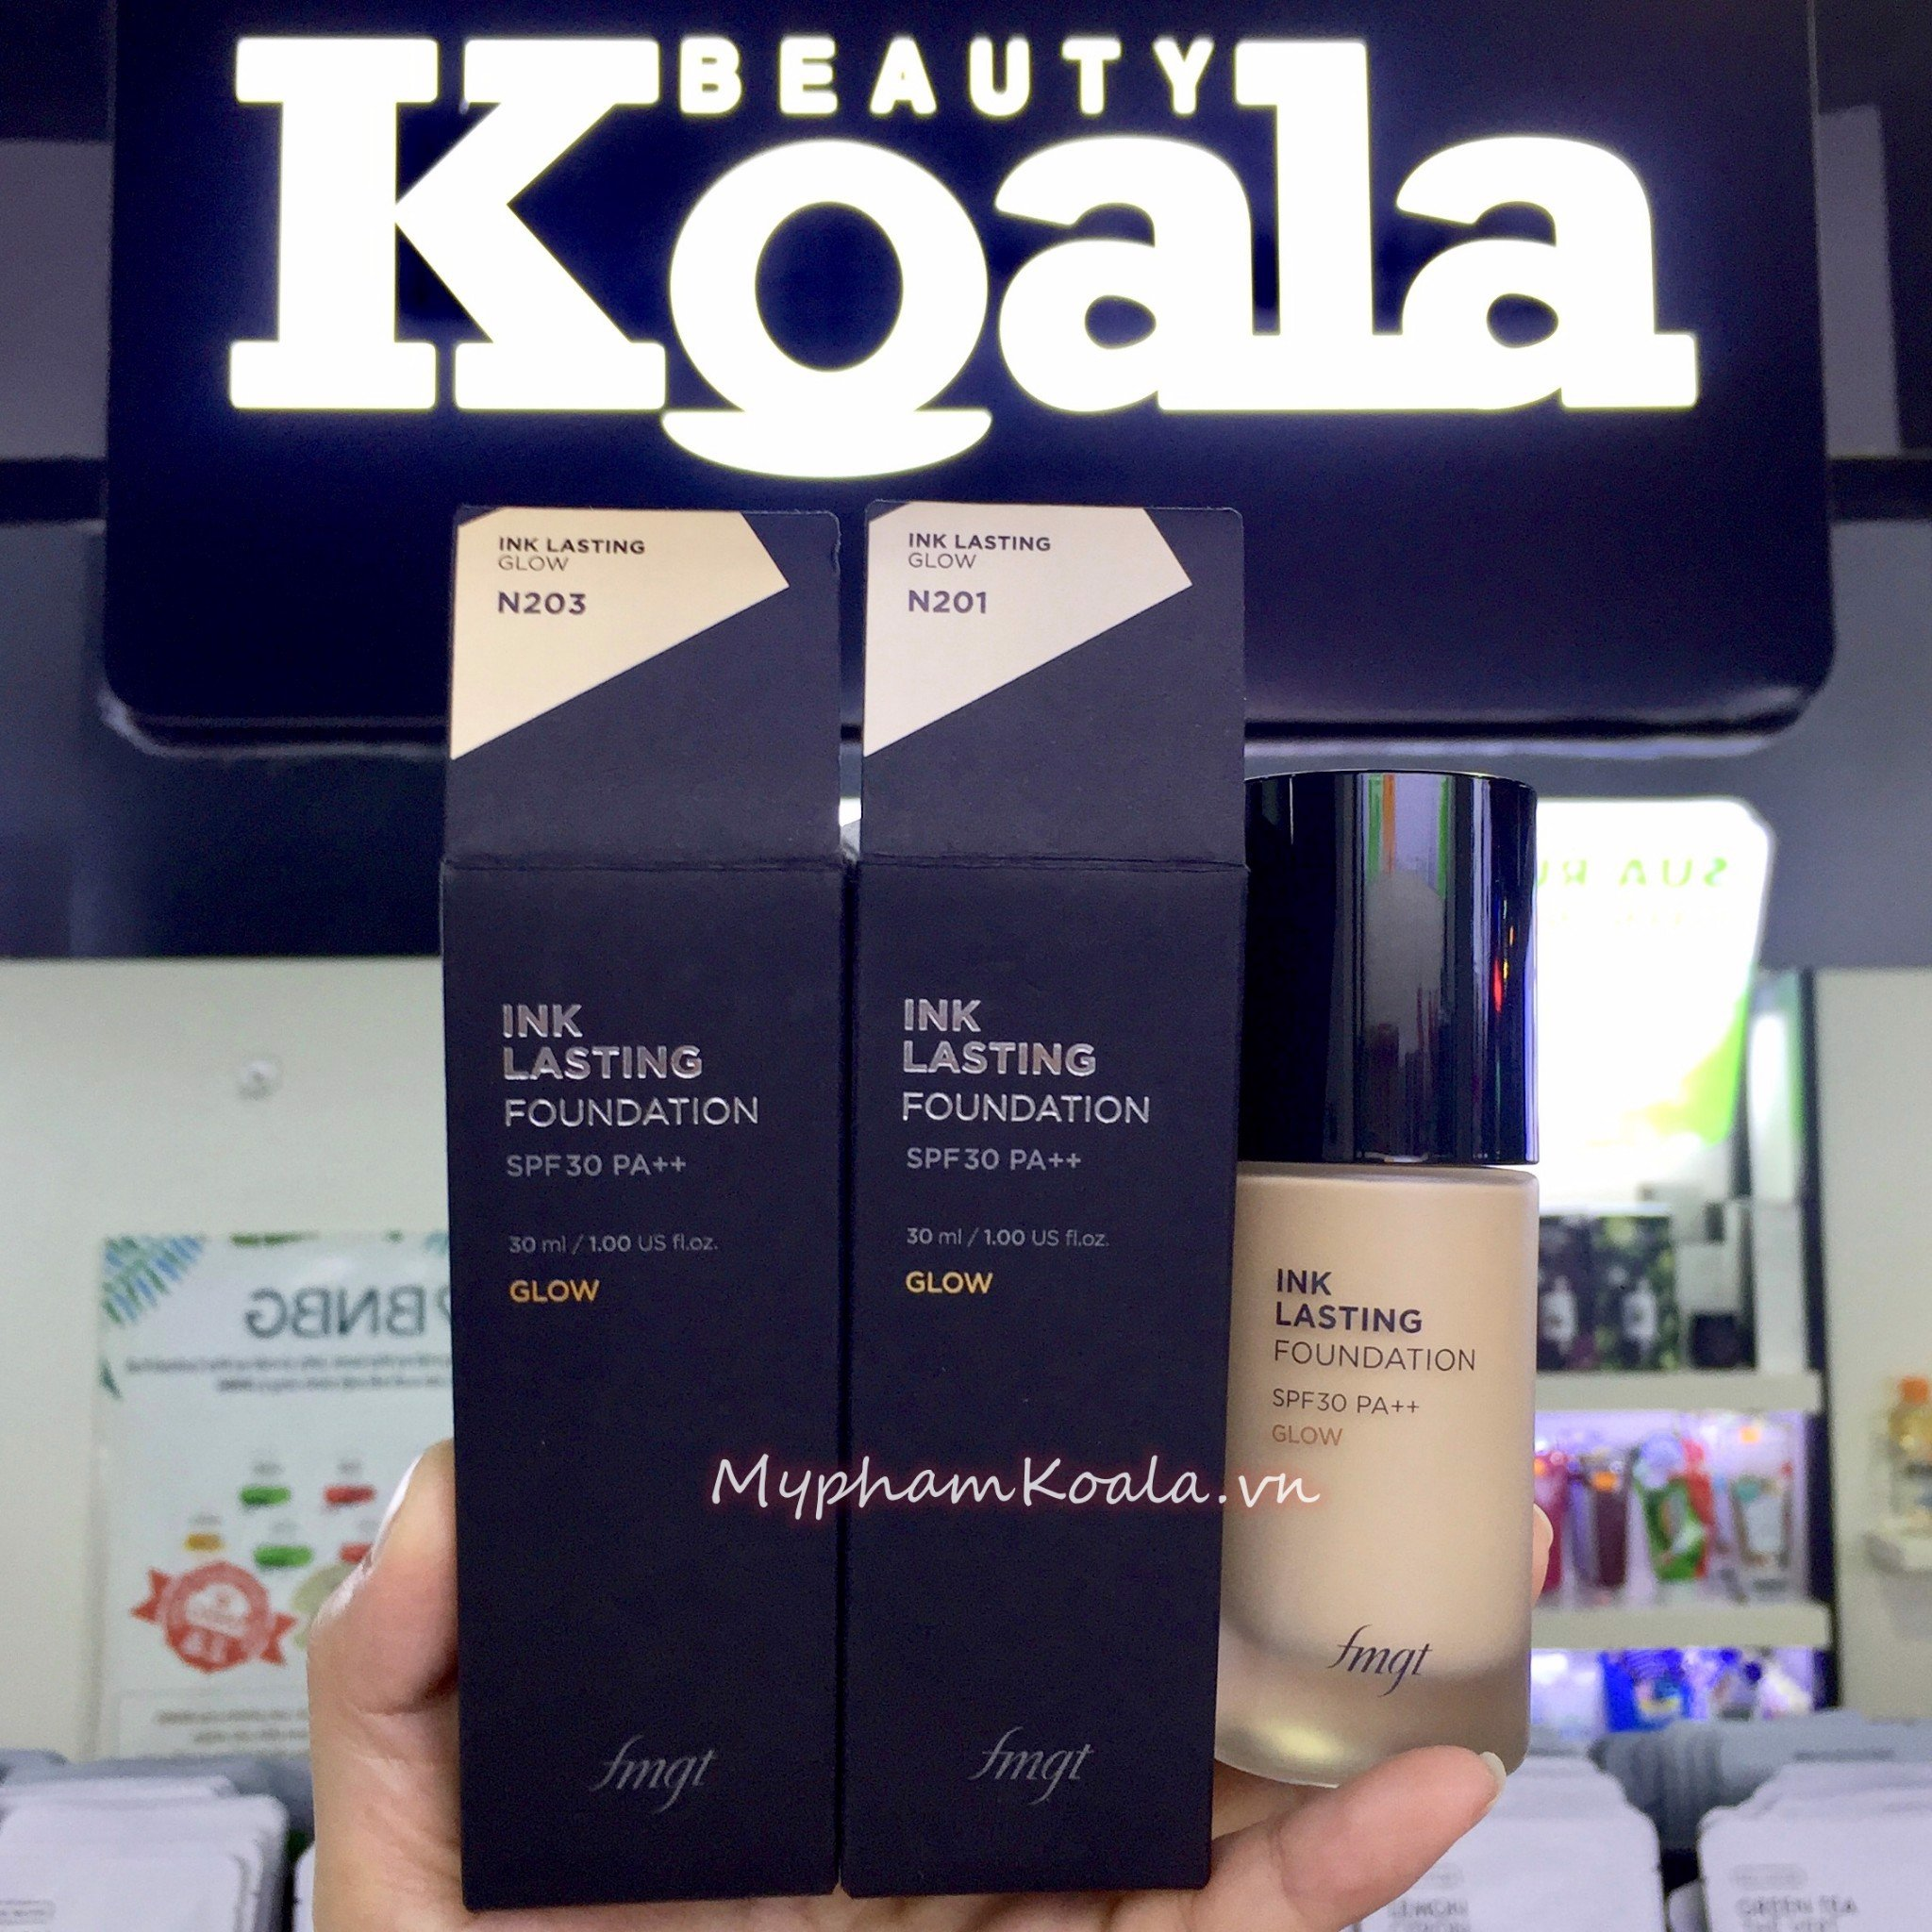 Kem Nền Đa Năng Căng Mọng Da The Face Shop fmgt Ink Lasting Foundation Glow 30ml